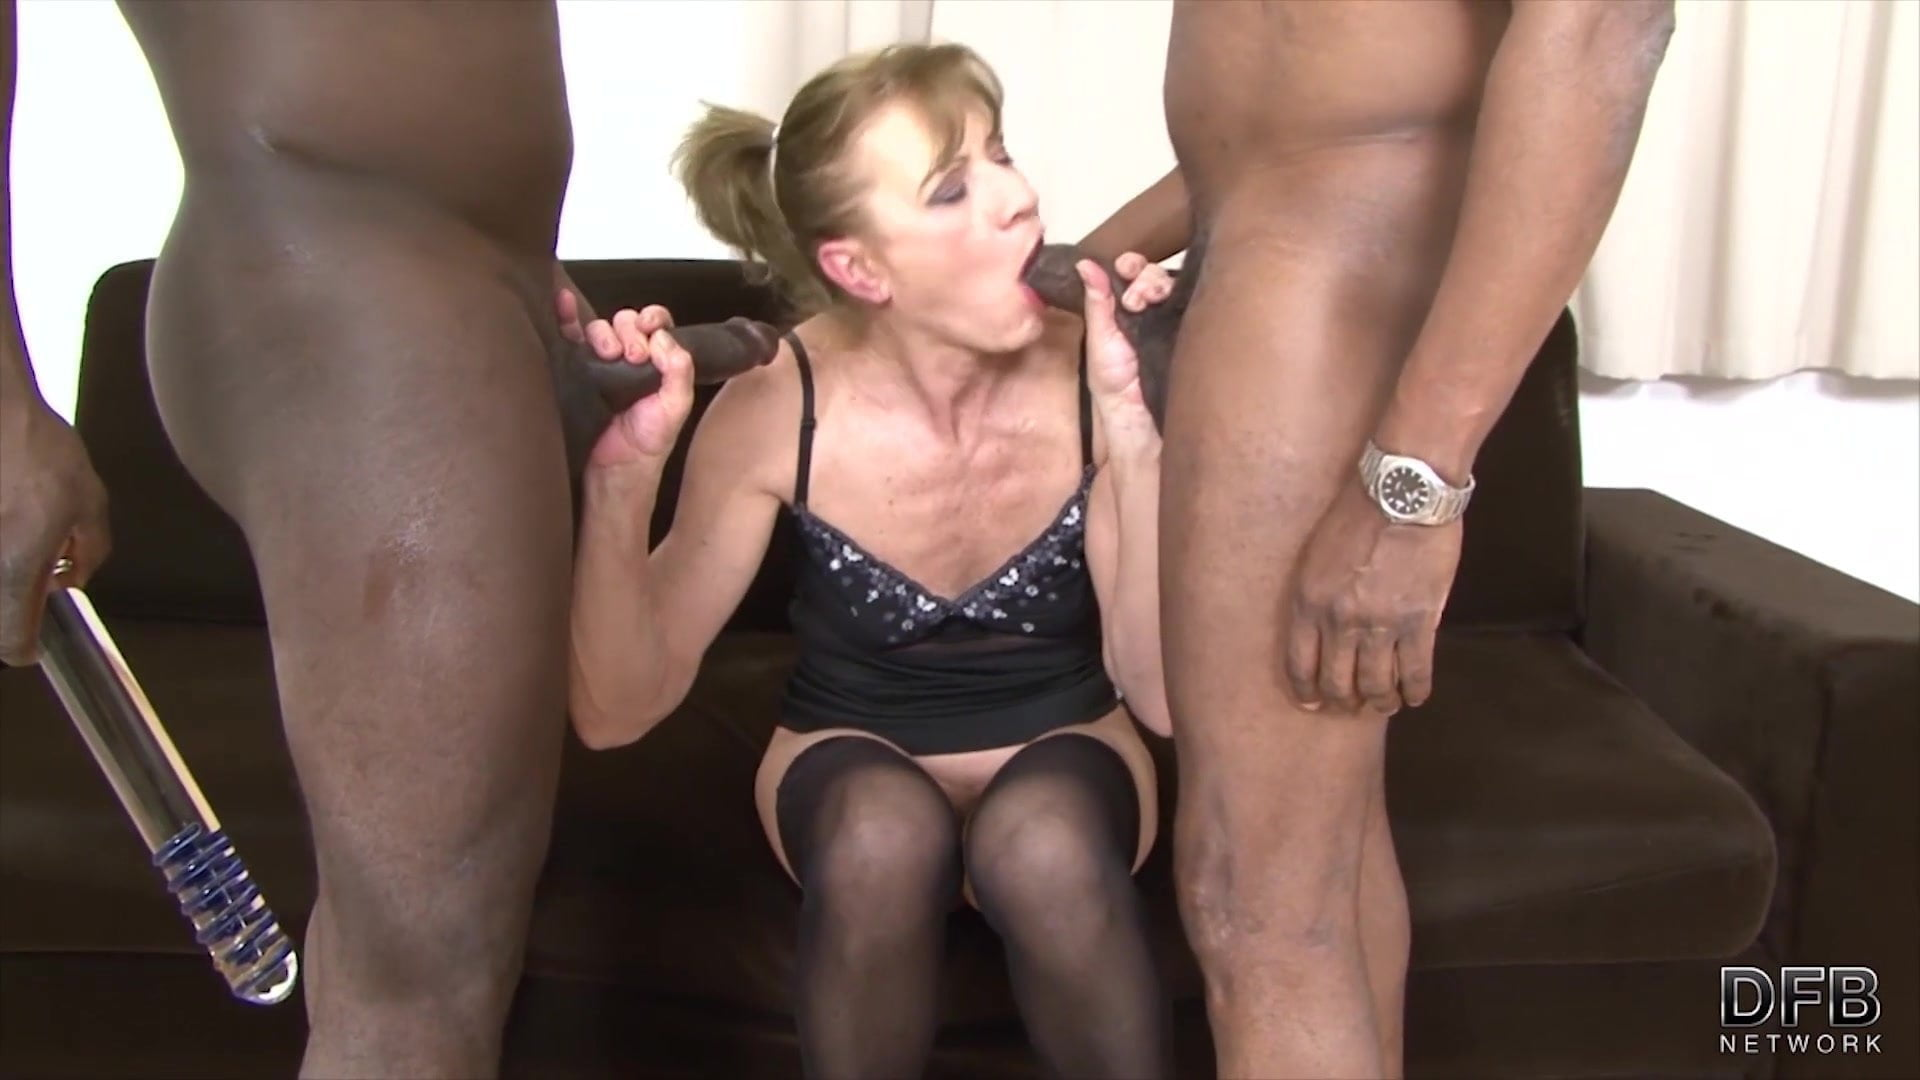 Granny Anal Fucked in Hardcore Interracial Threesome.